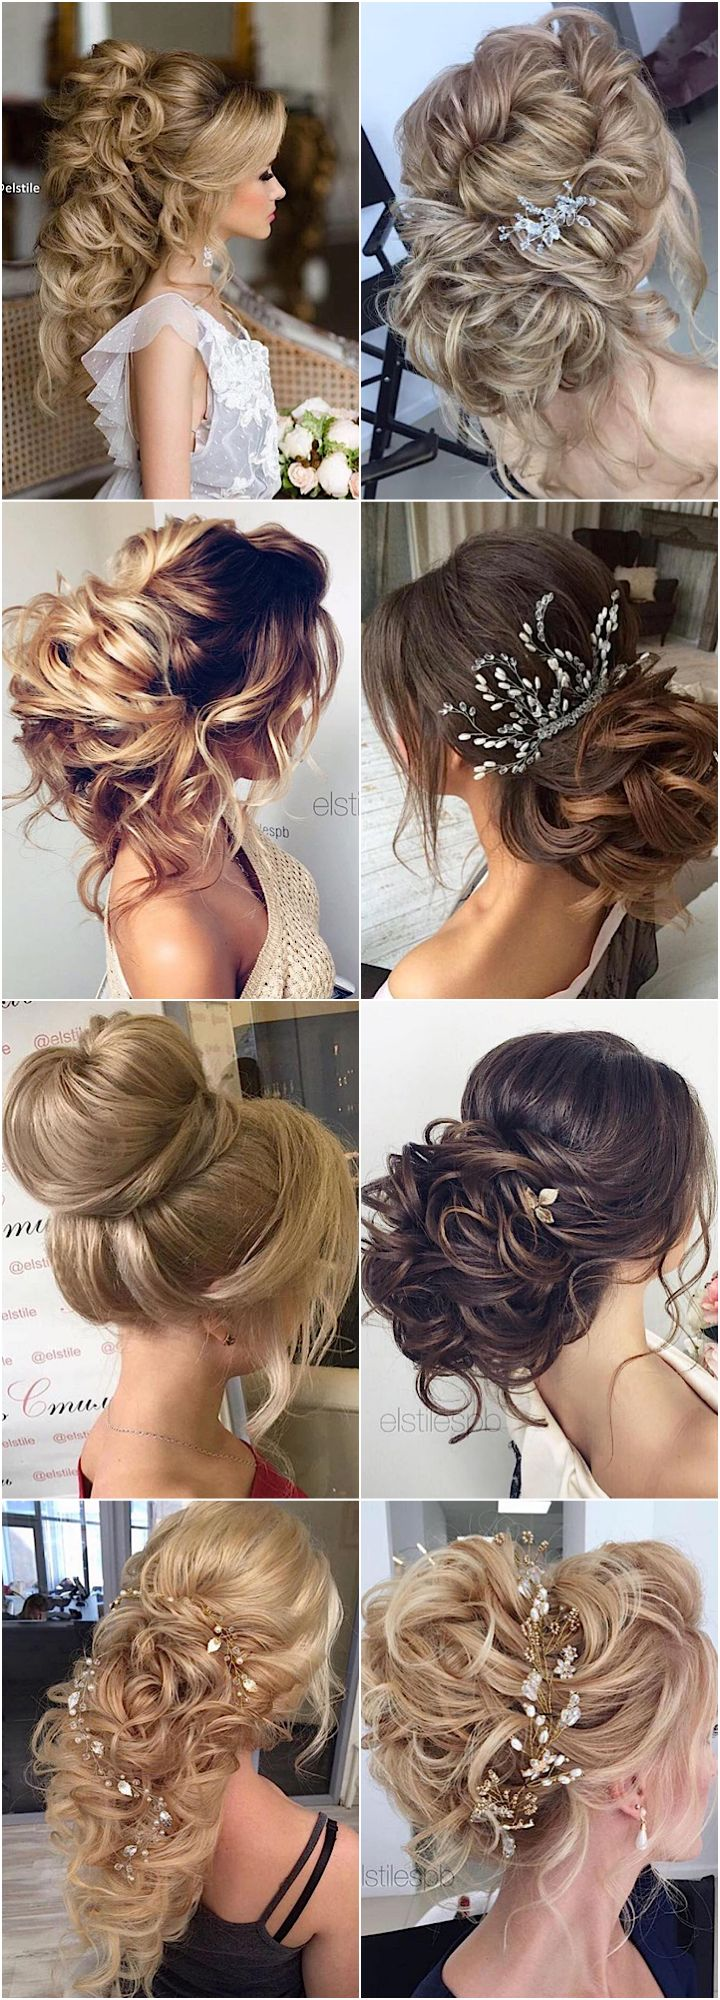 best 20+ pageant hairstyles ideas on pinterest | pageant hair